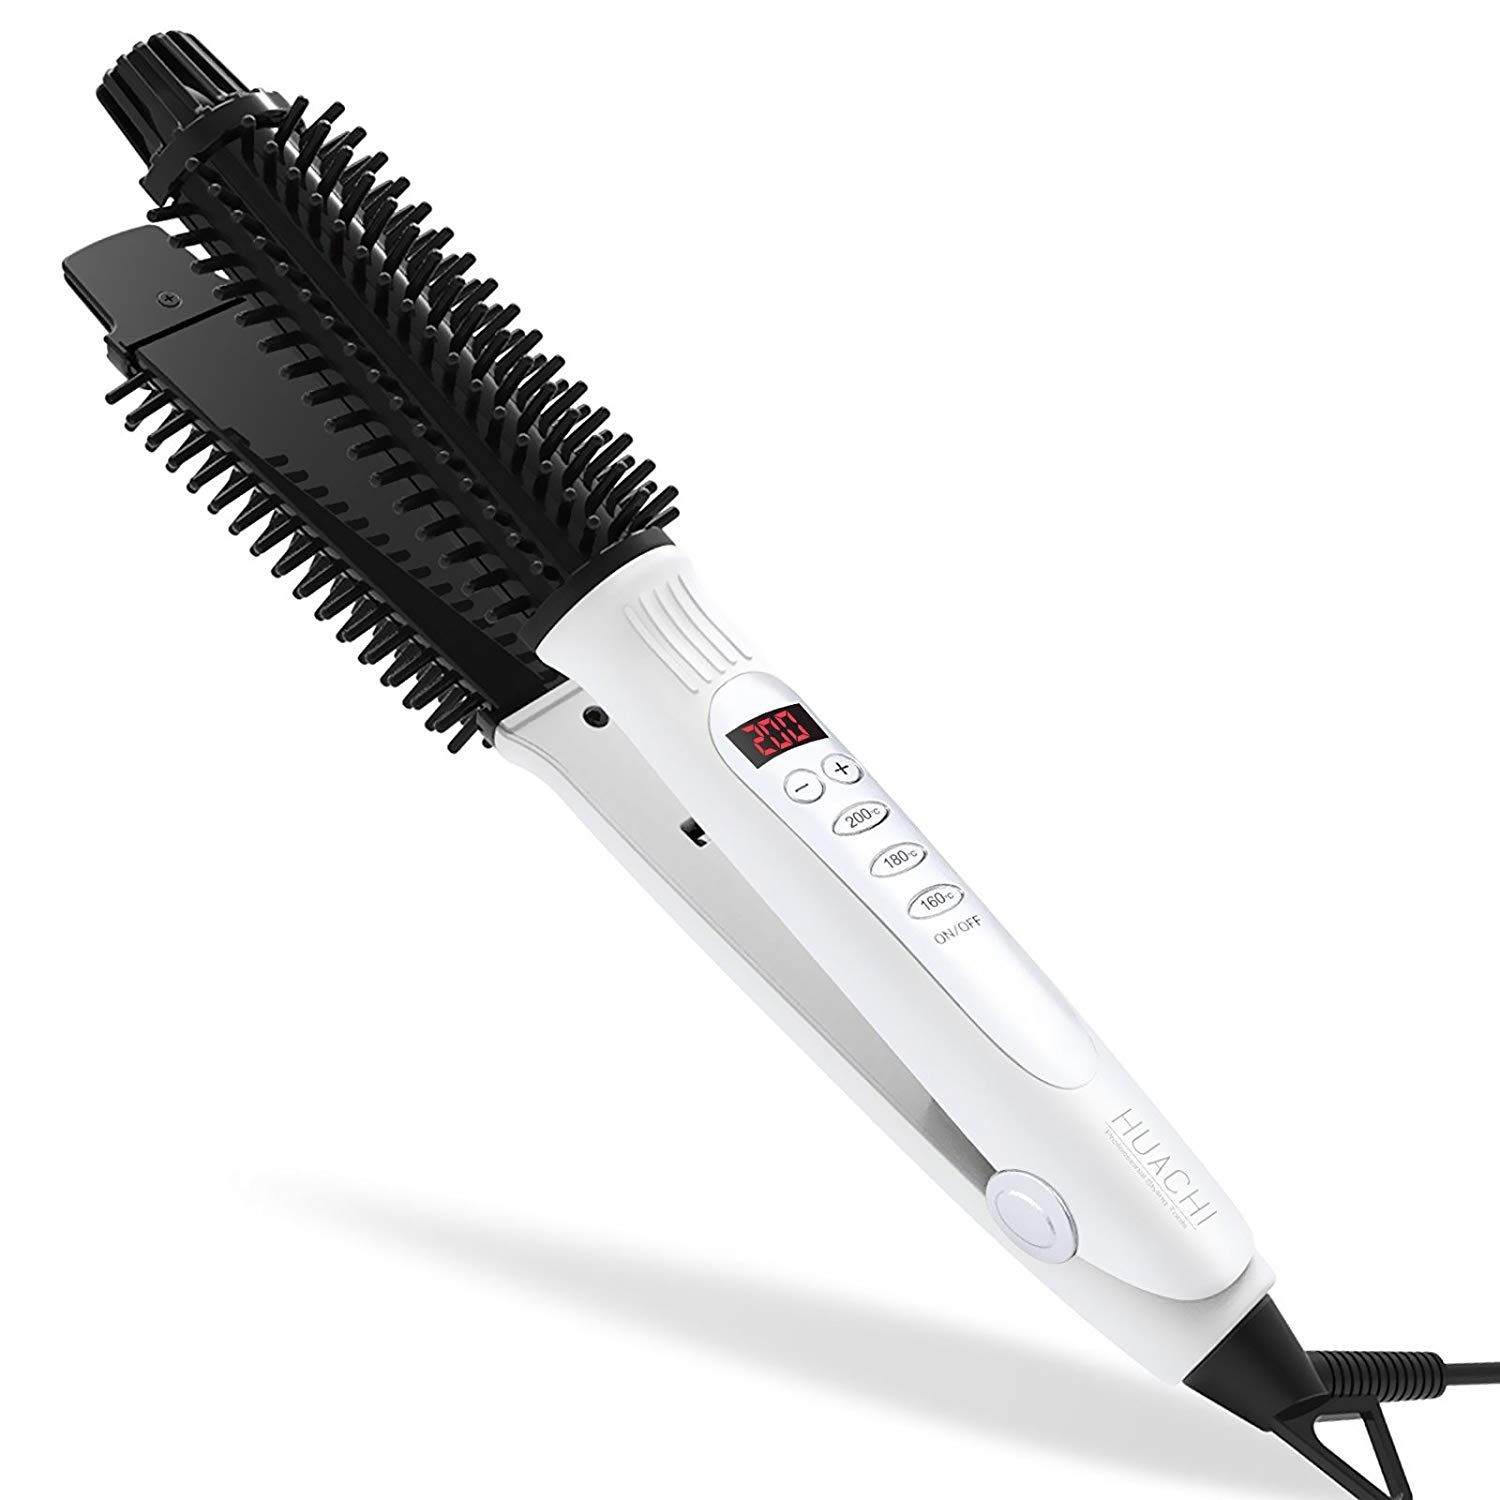 Huachi Hair Straightener 3 In 1 Ceramic Curling Iron Brush Flat Iron Hot Brush With Led Displ Round Hair Brush Flat Iron Hair Styles Ceramic Hair Straightener